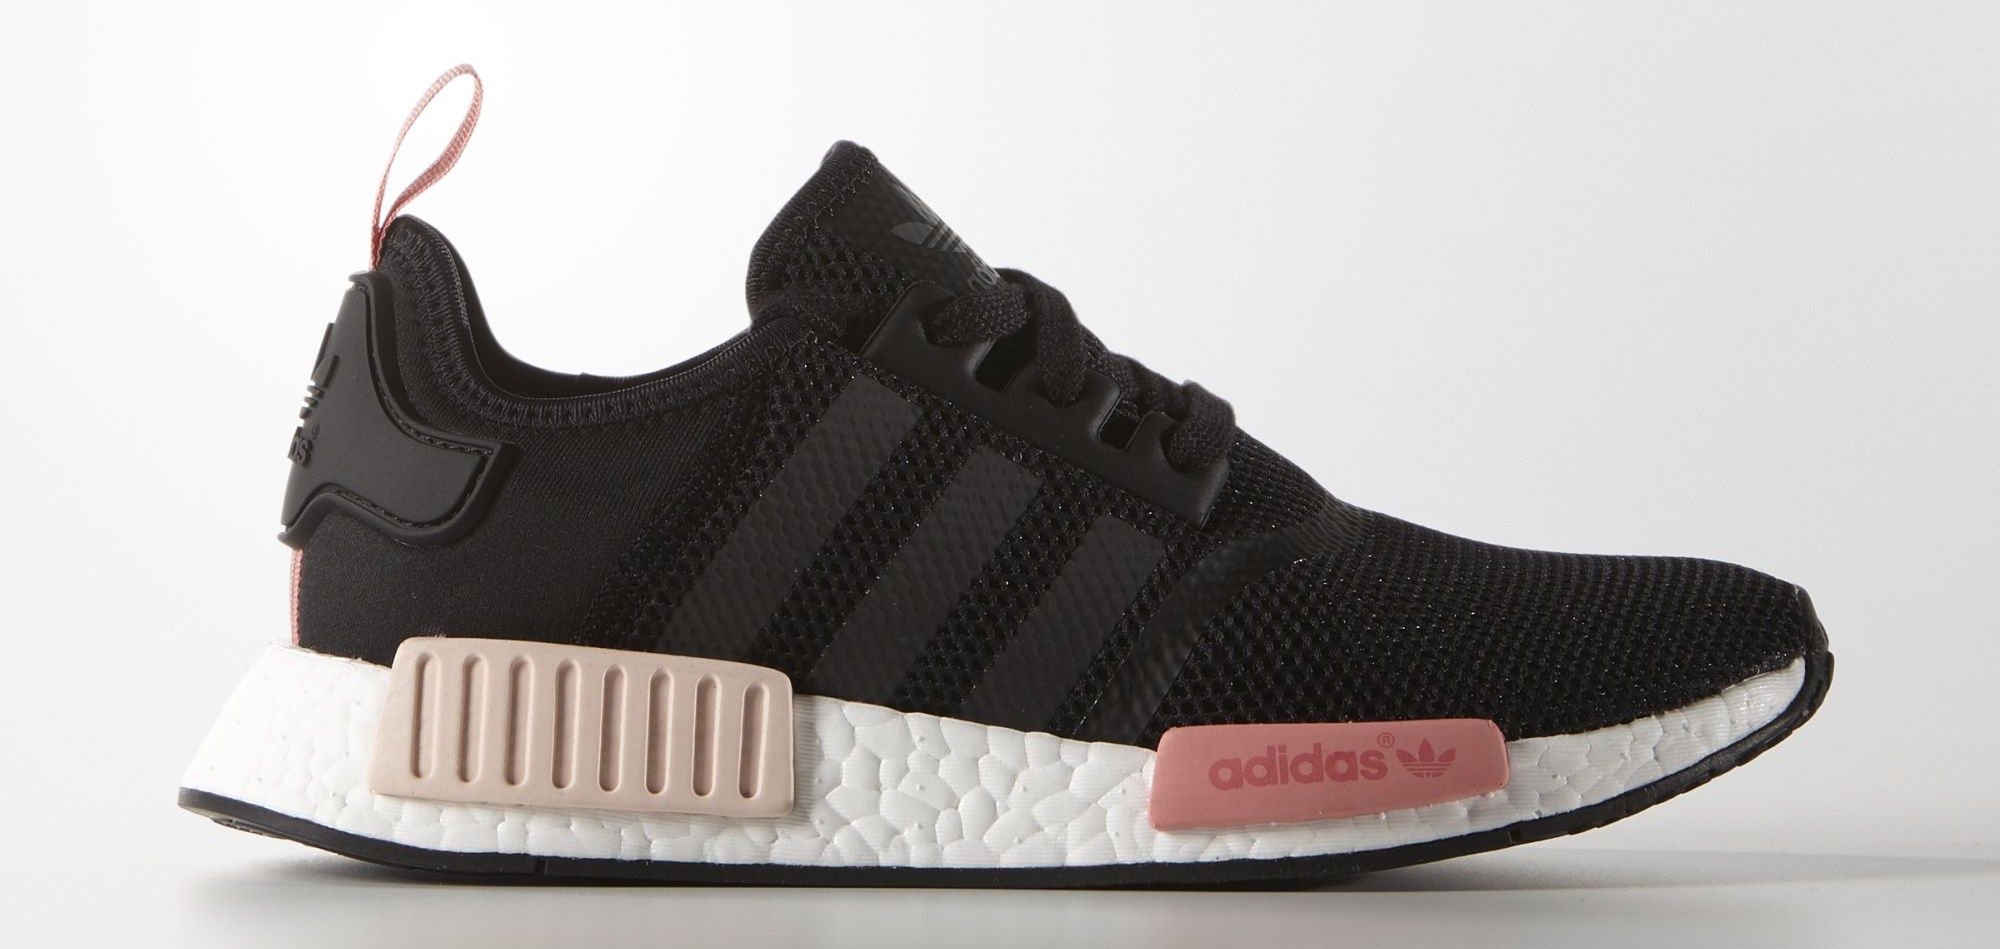 various colors 410d8 a014d The adidas NMD R1 Runner is Available in Multiple Colorways ...